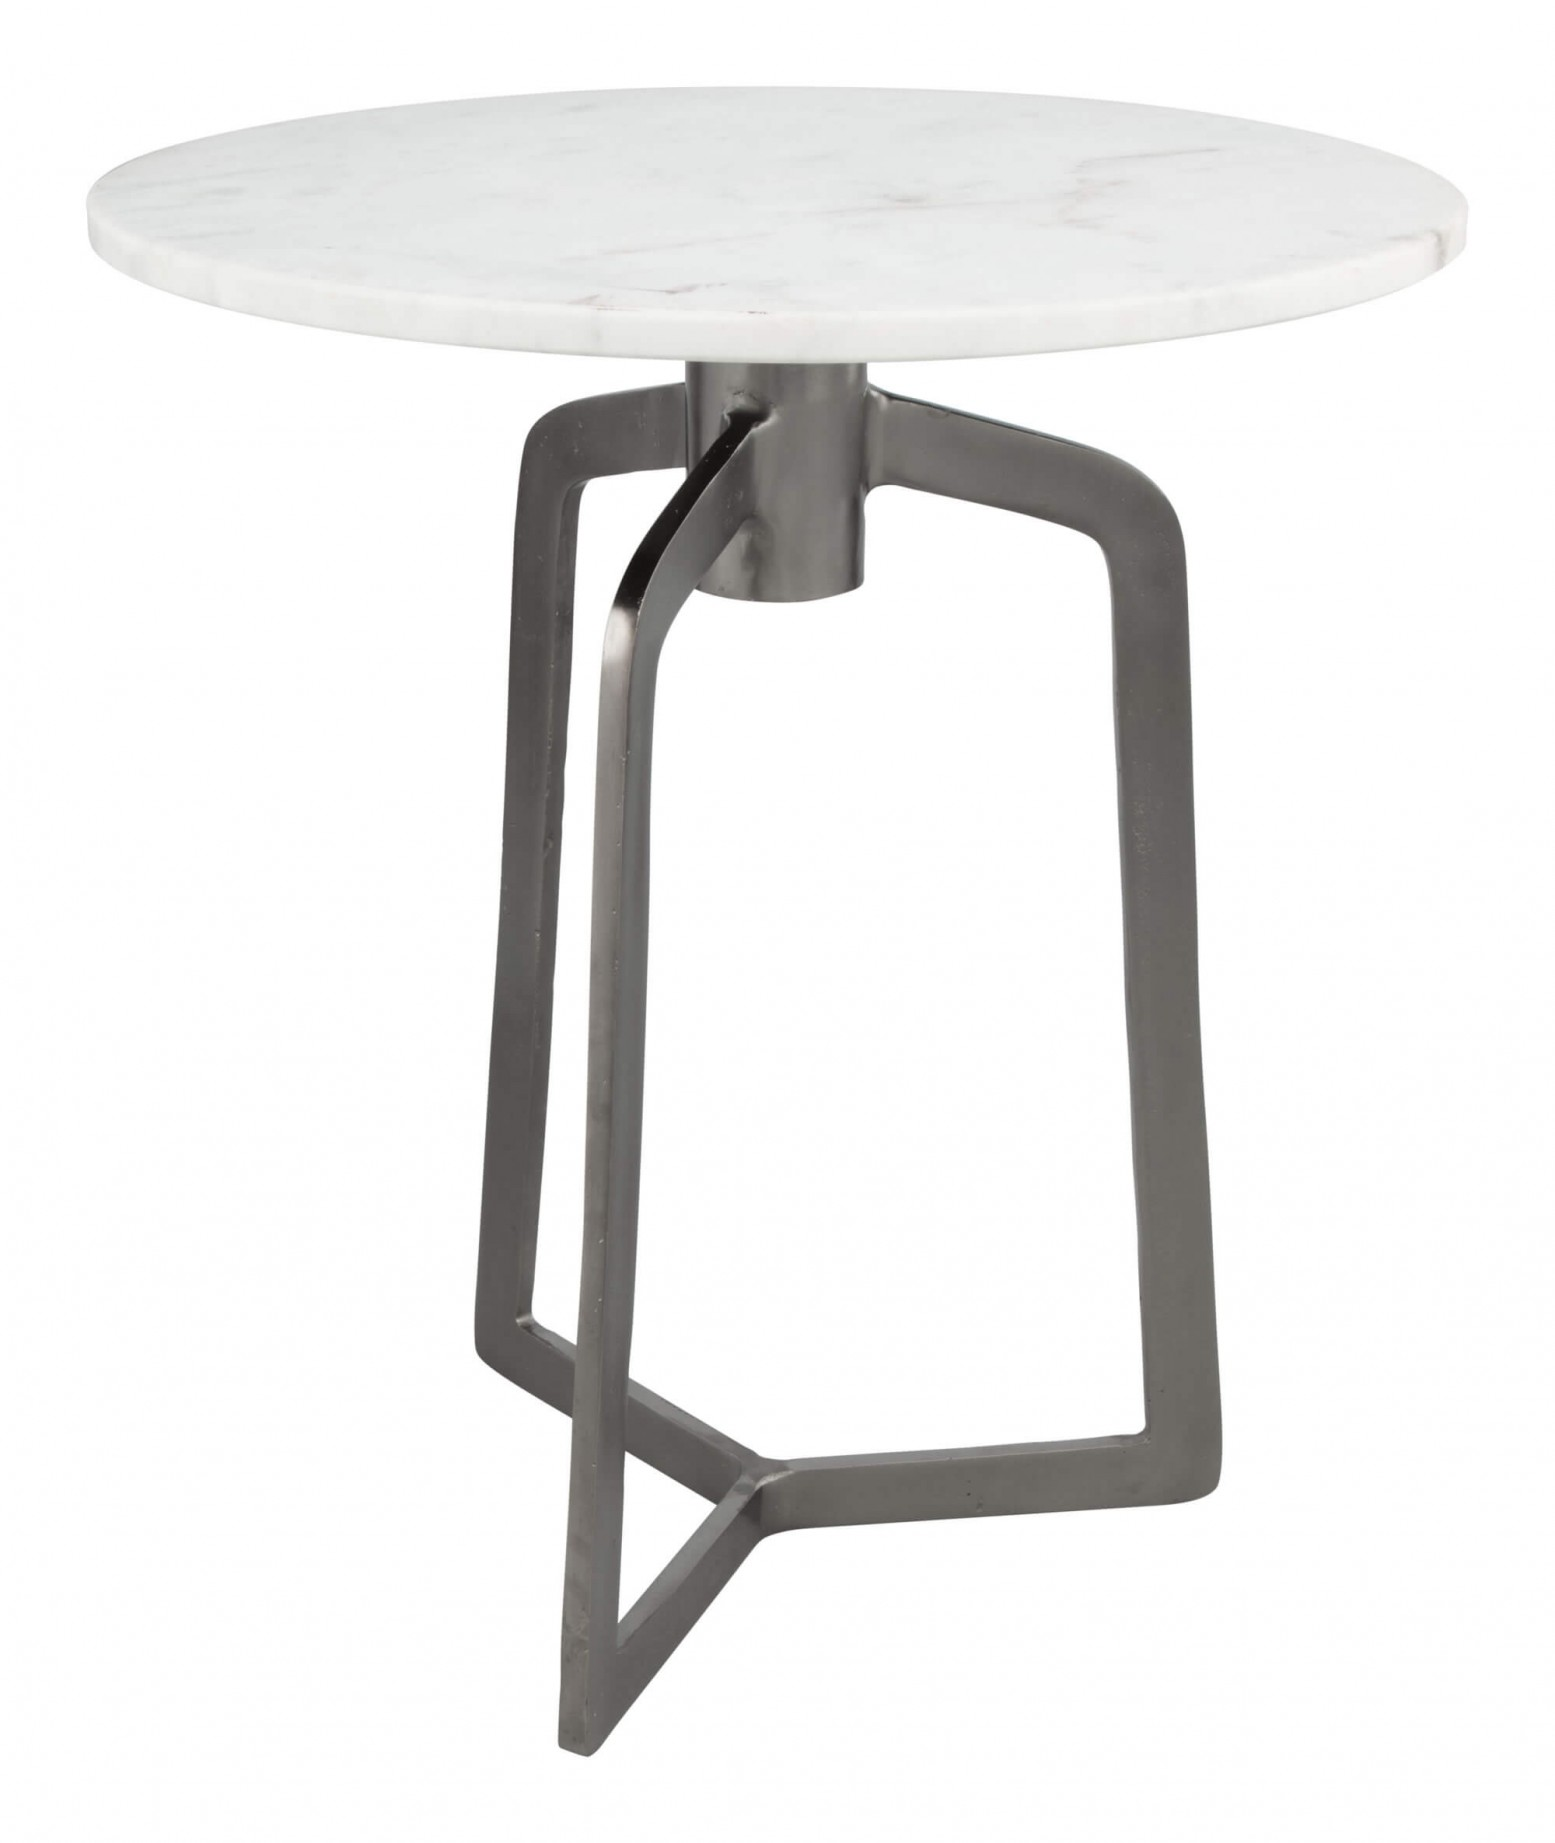 Rand Marble Side Table White Marble Black By Zuo Modern Sohomod Com